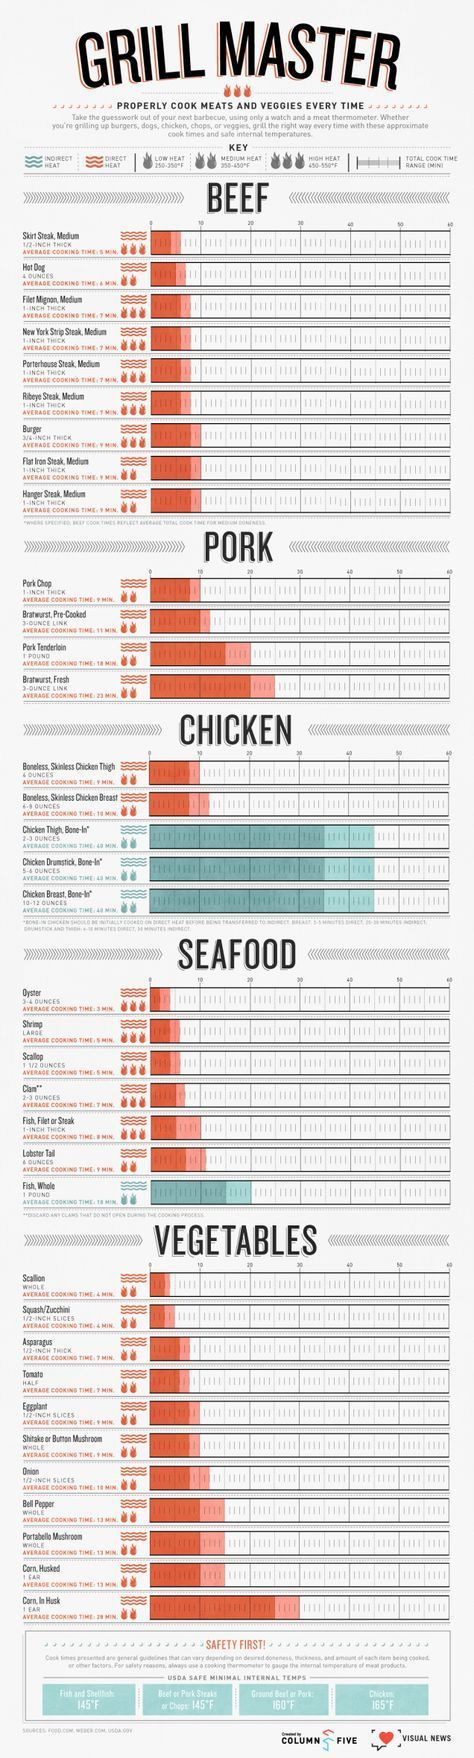 The graphic is comprehensive and includes beef, pork, seafood and veggies. Not only does it tell you the different cooking times, but also the proper temperatures for food safety. If you've ever been a victim of undercooked chicken or overcooked dry burgers, pass this chart along to the cook.